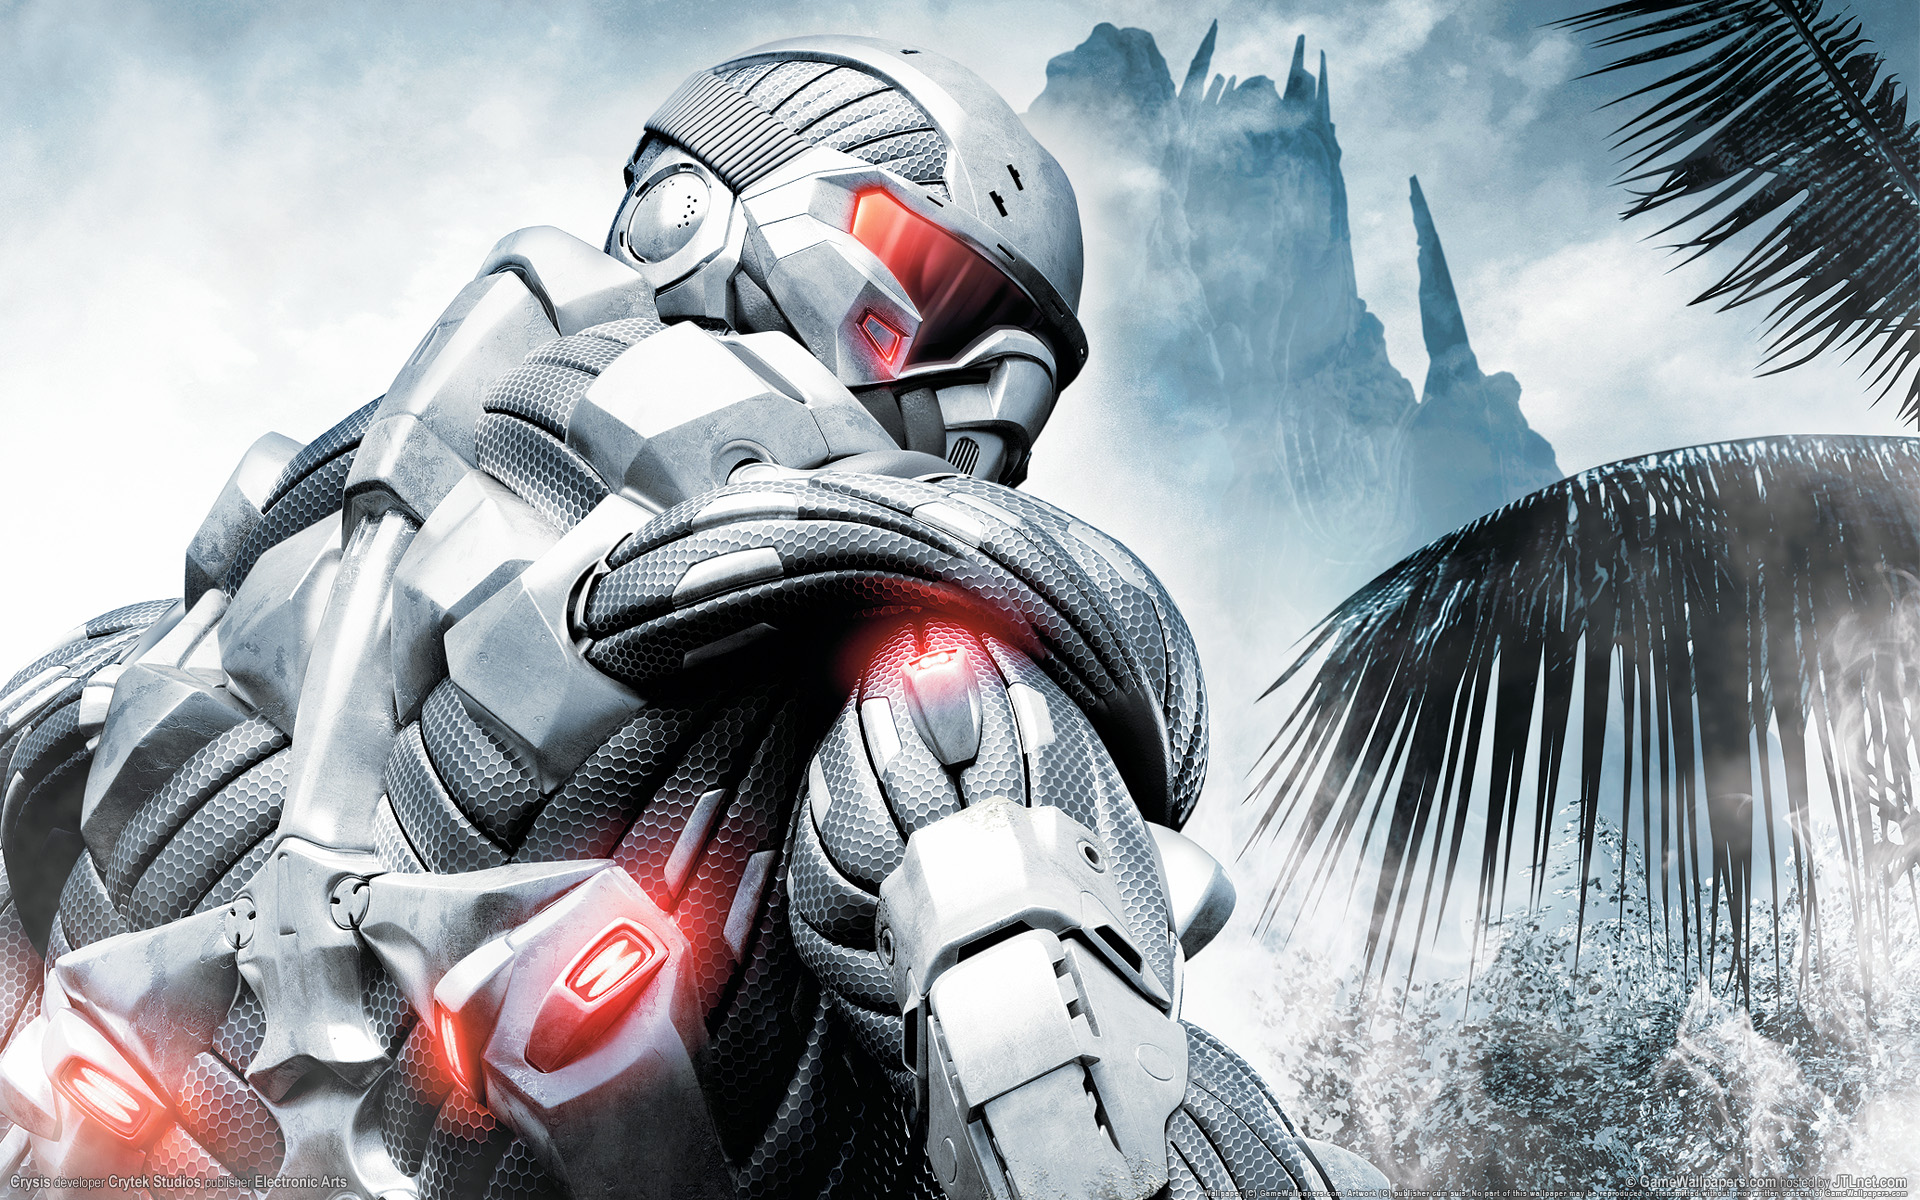 Crysis 3 , HD Wallpaper & Backgrounds